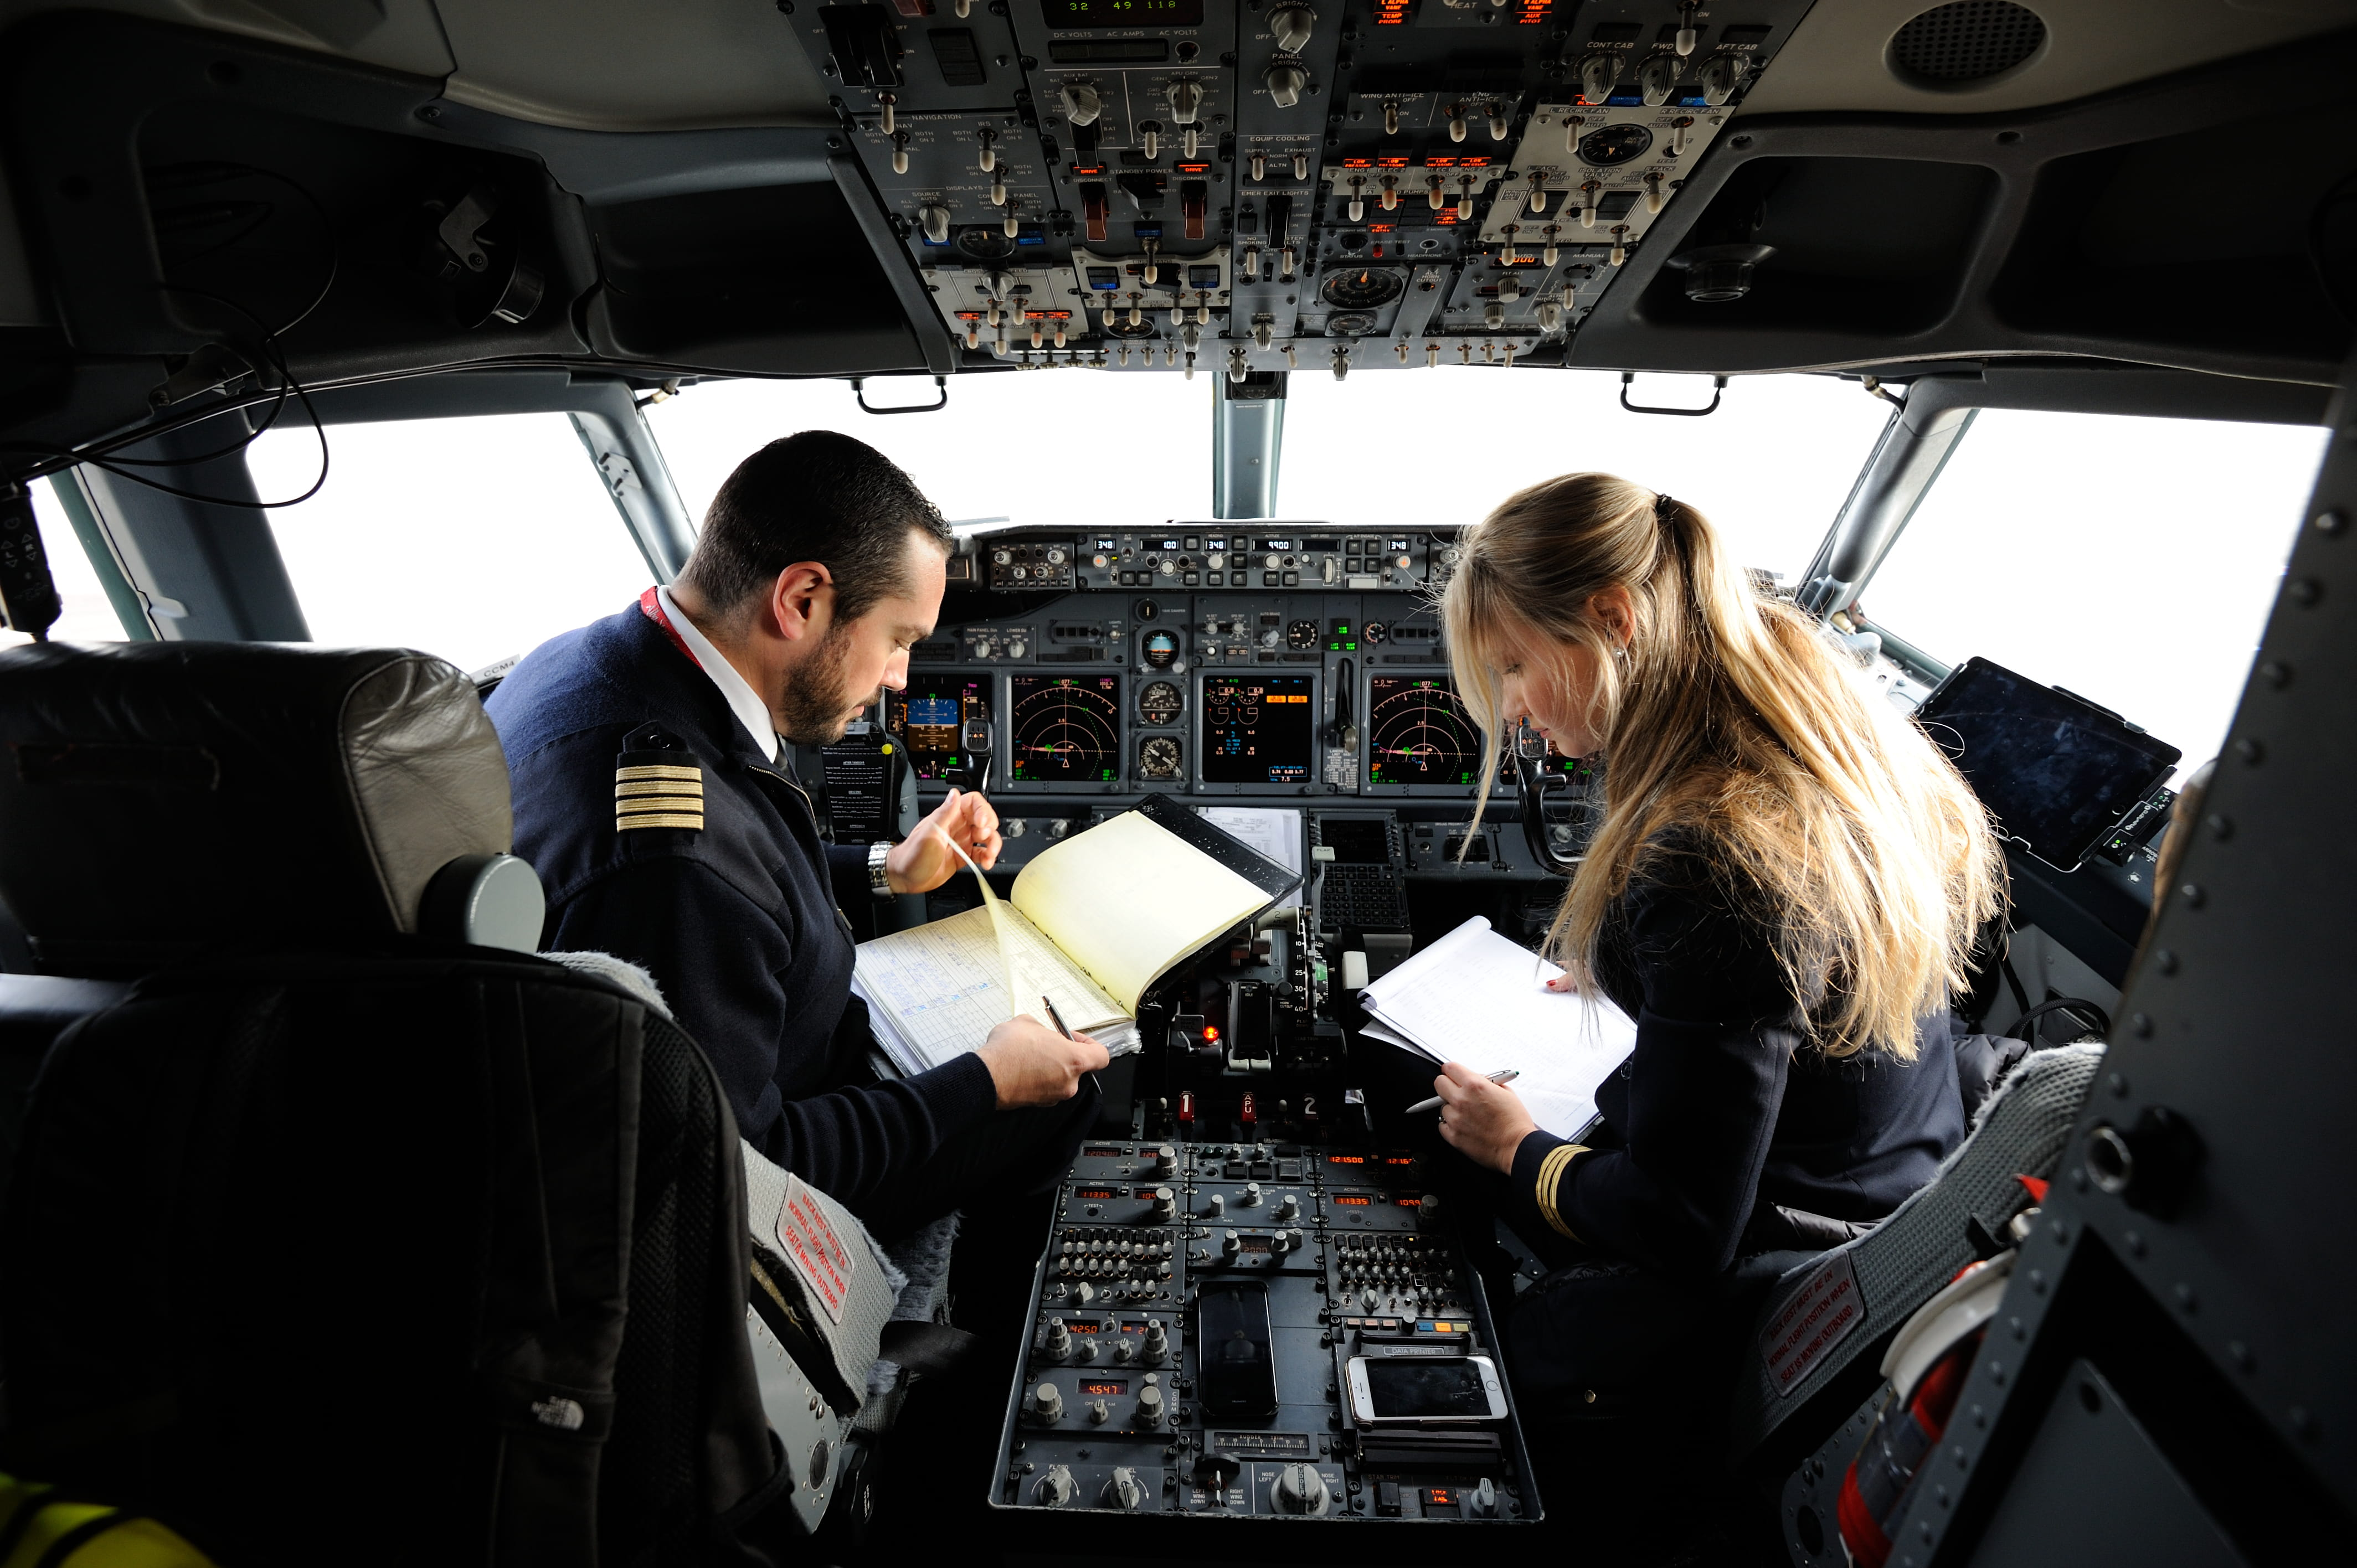 How to pass the flight school selection process? - This is